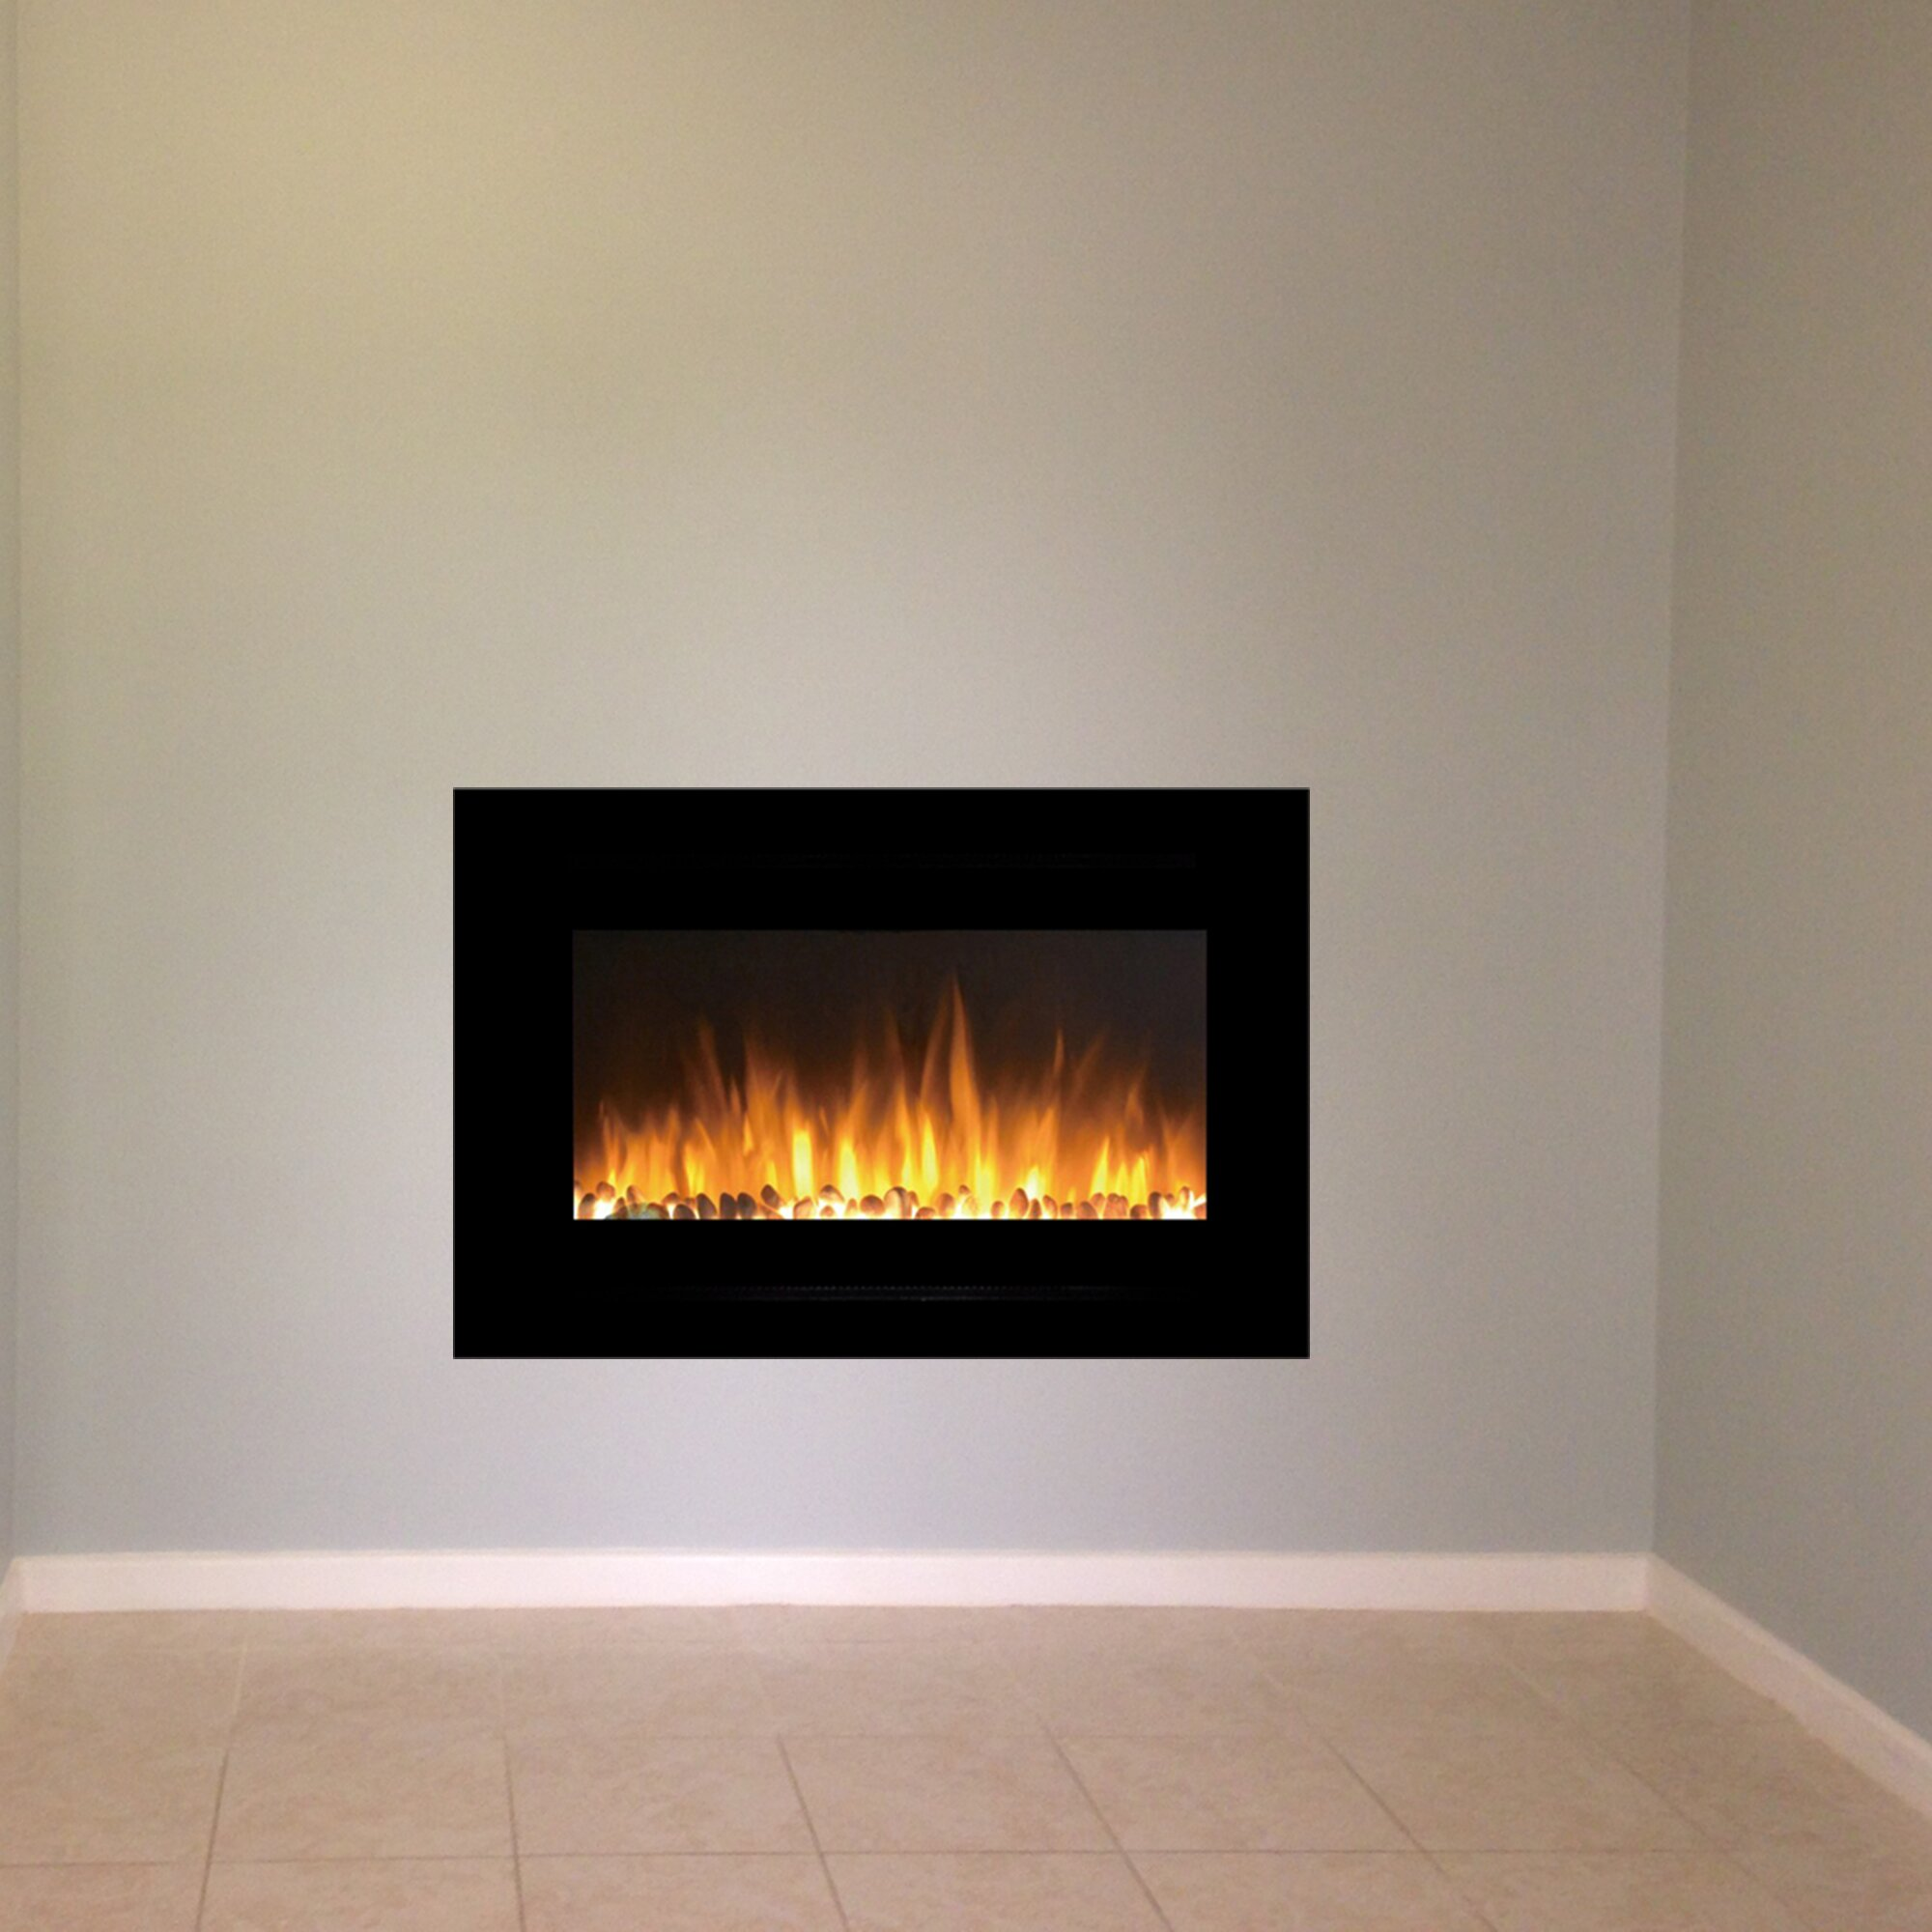 Wall Mount Infrared Fireplace highwindsus